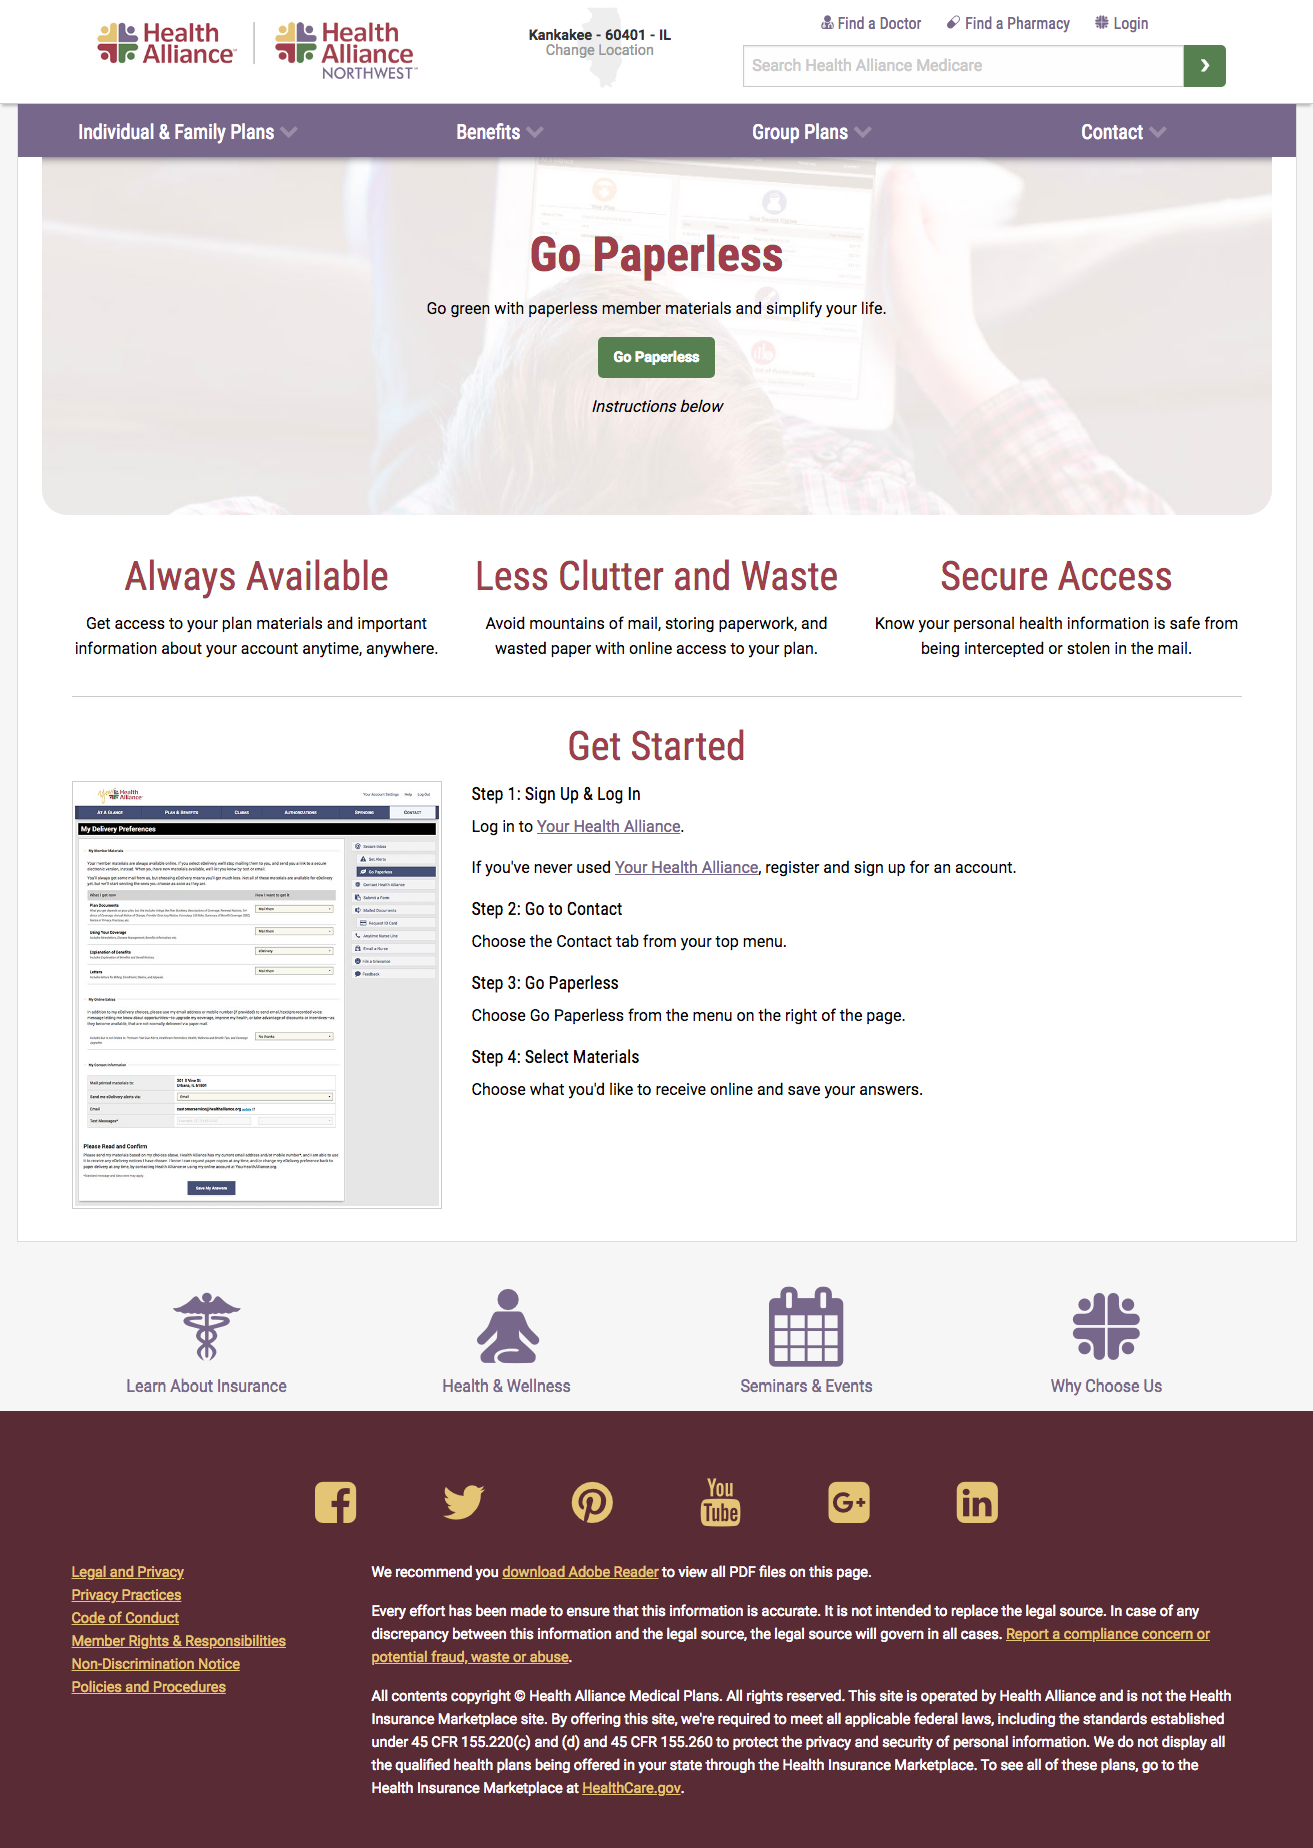 Go paperless landing page